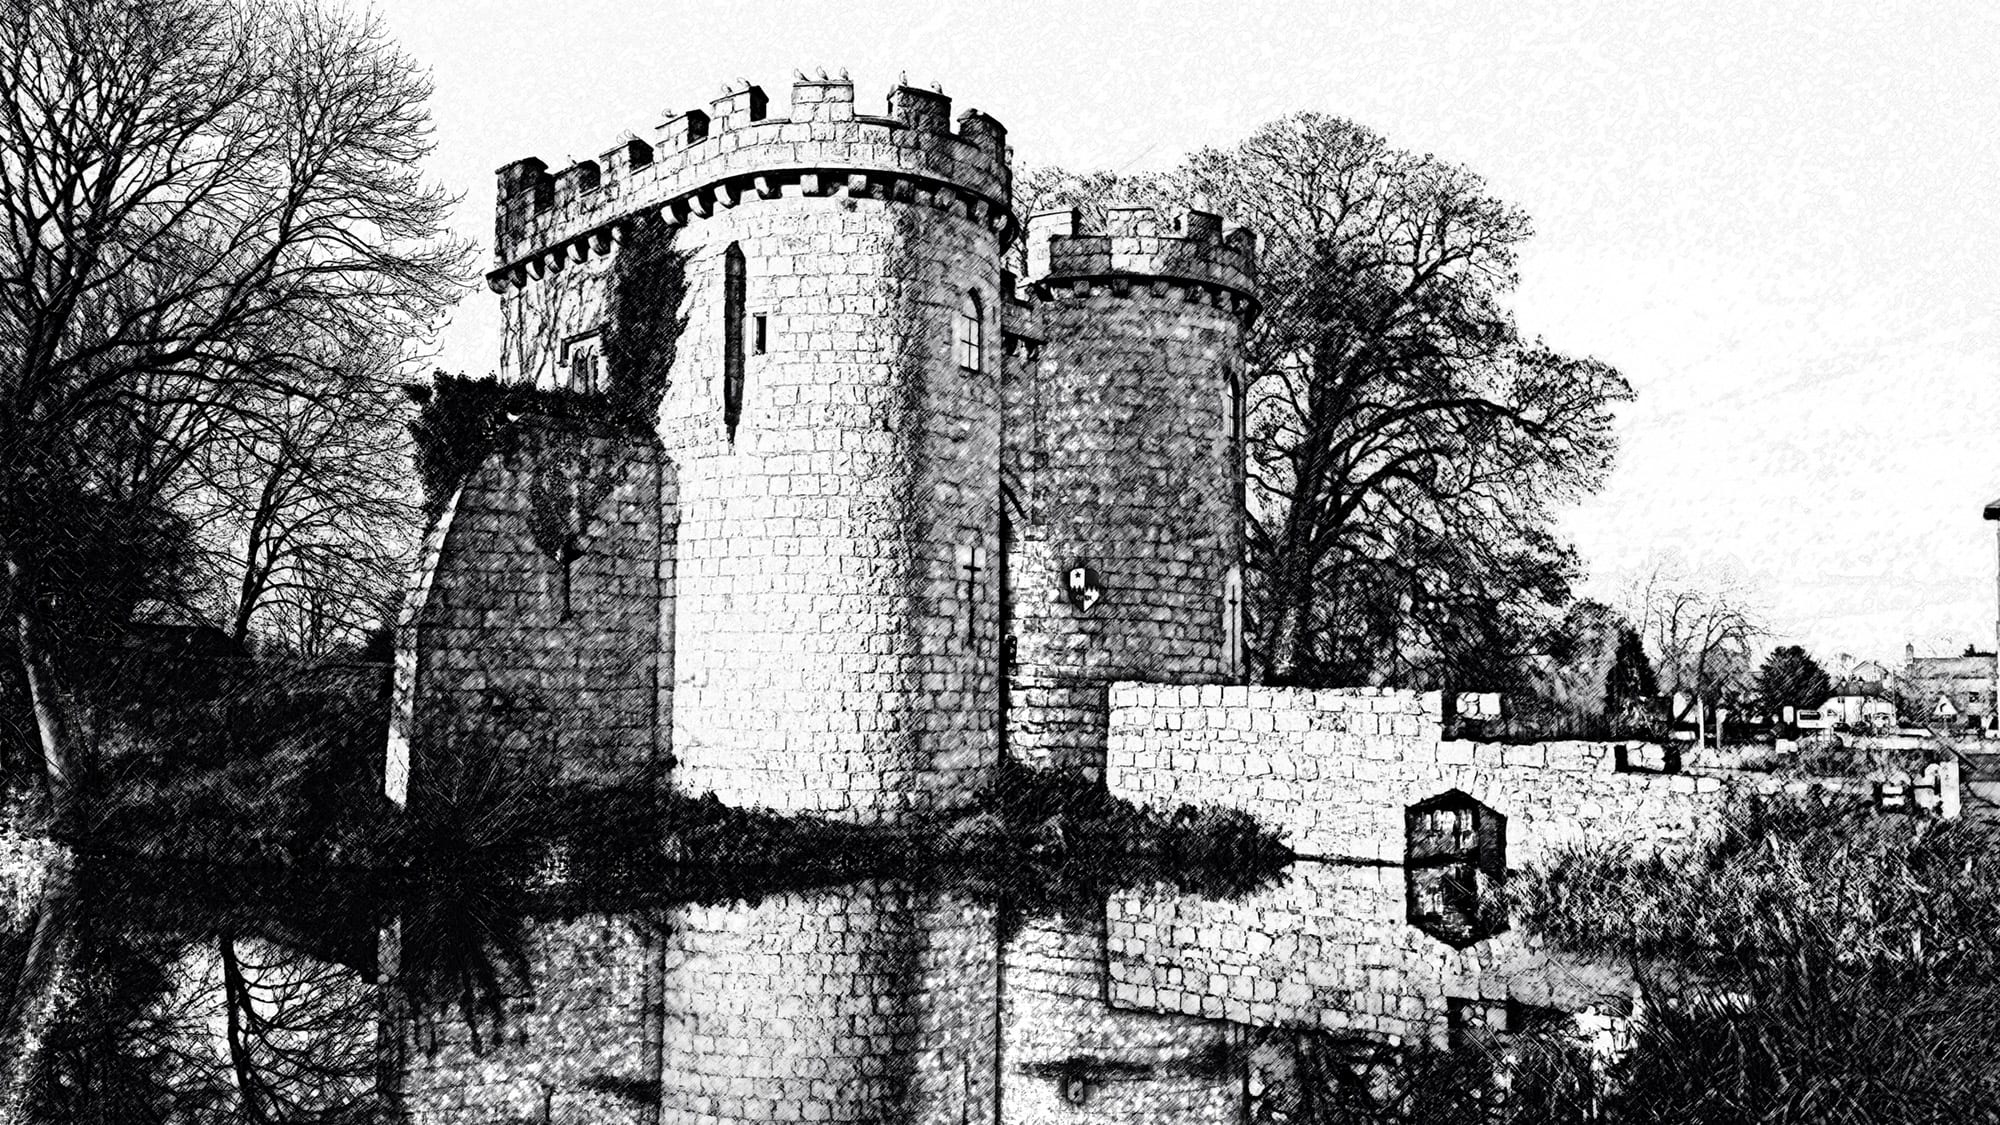 Whittington Castle Appeal